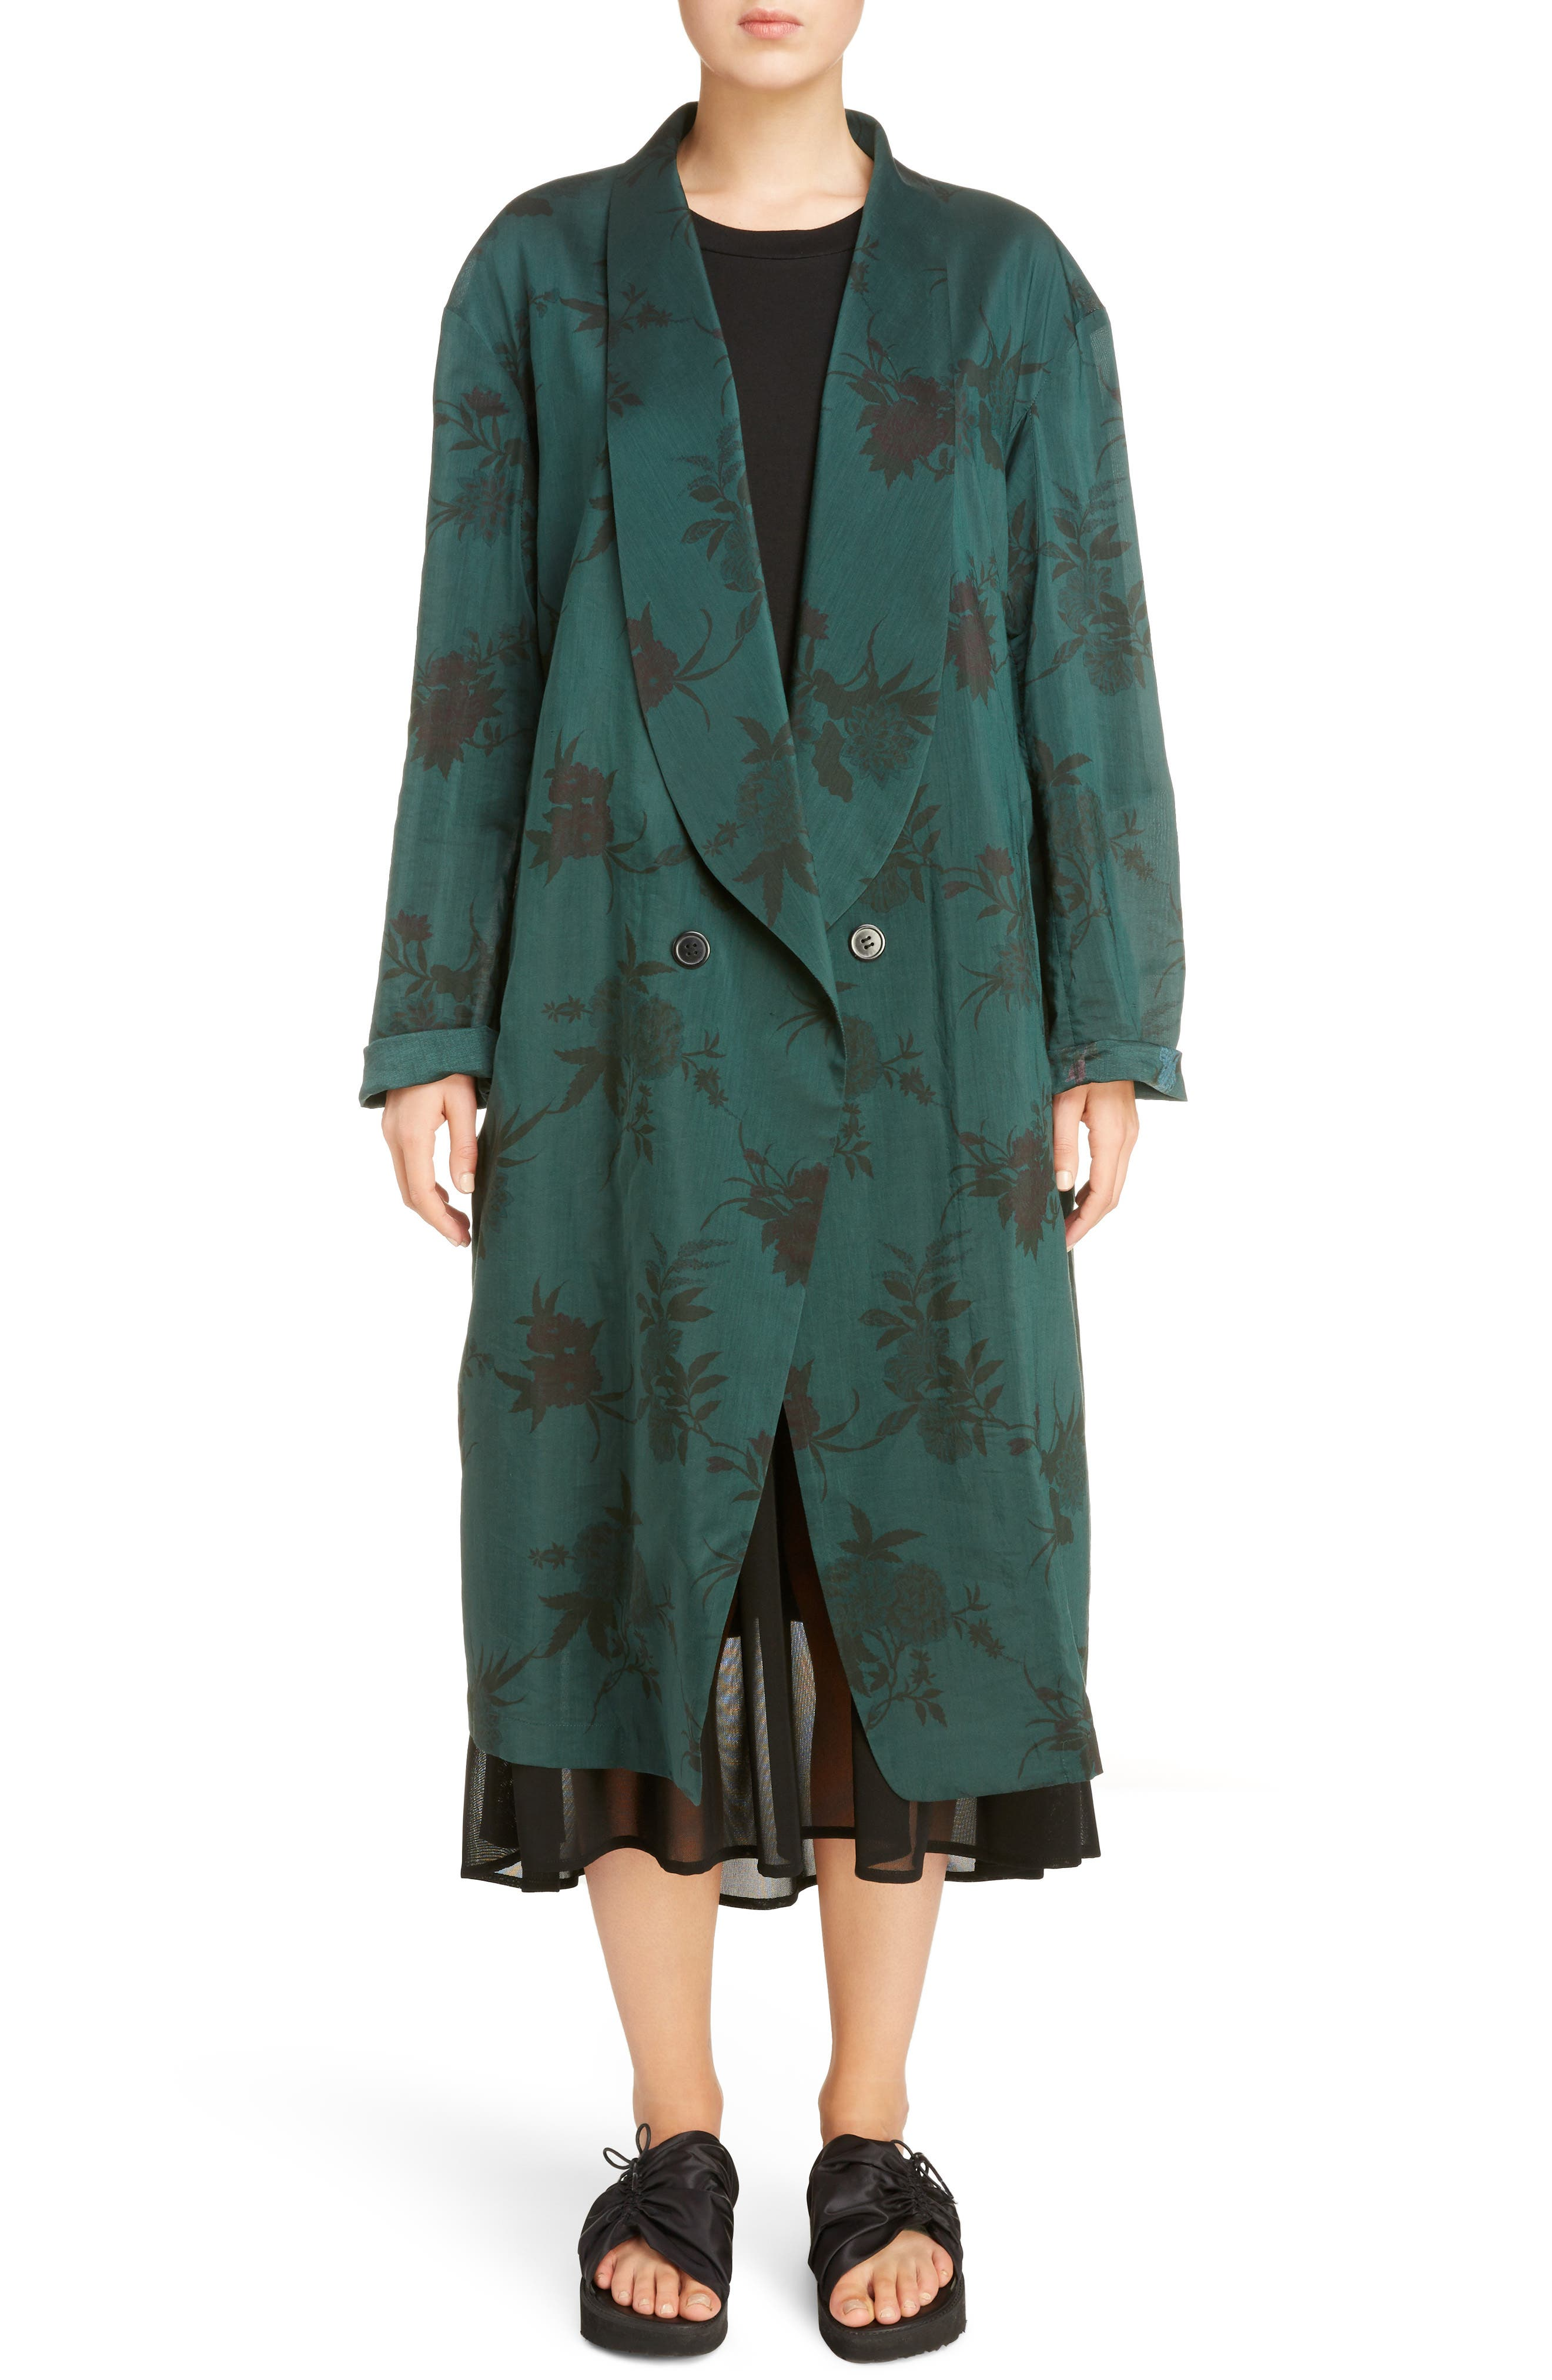 Y's by Yohji Yamamoto Floral Coat